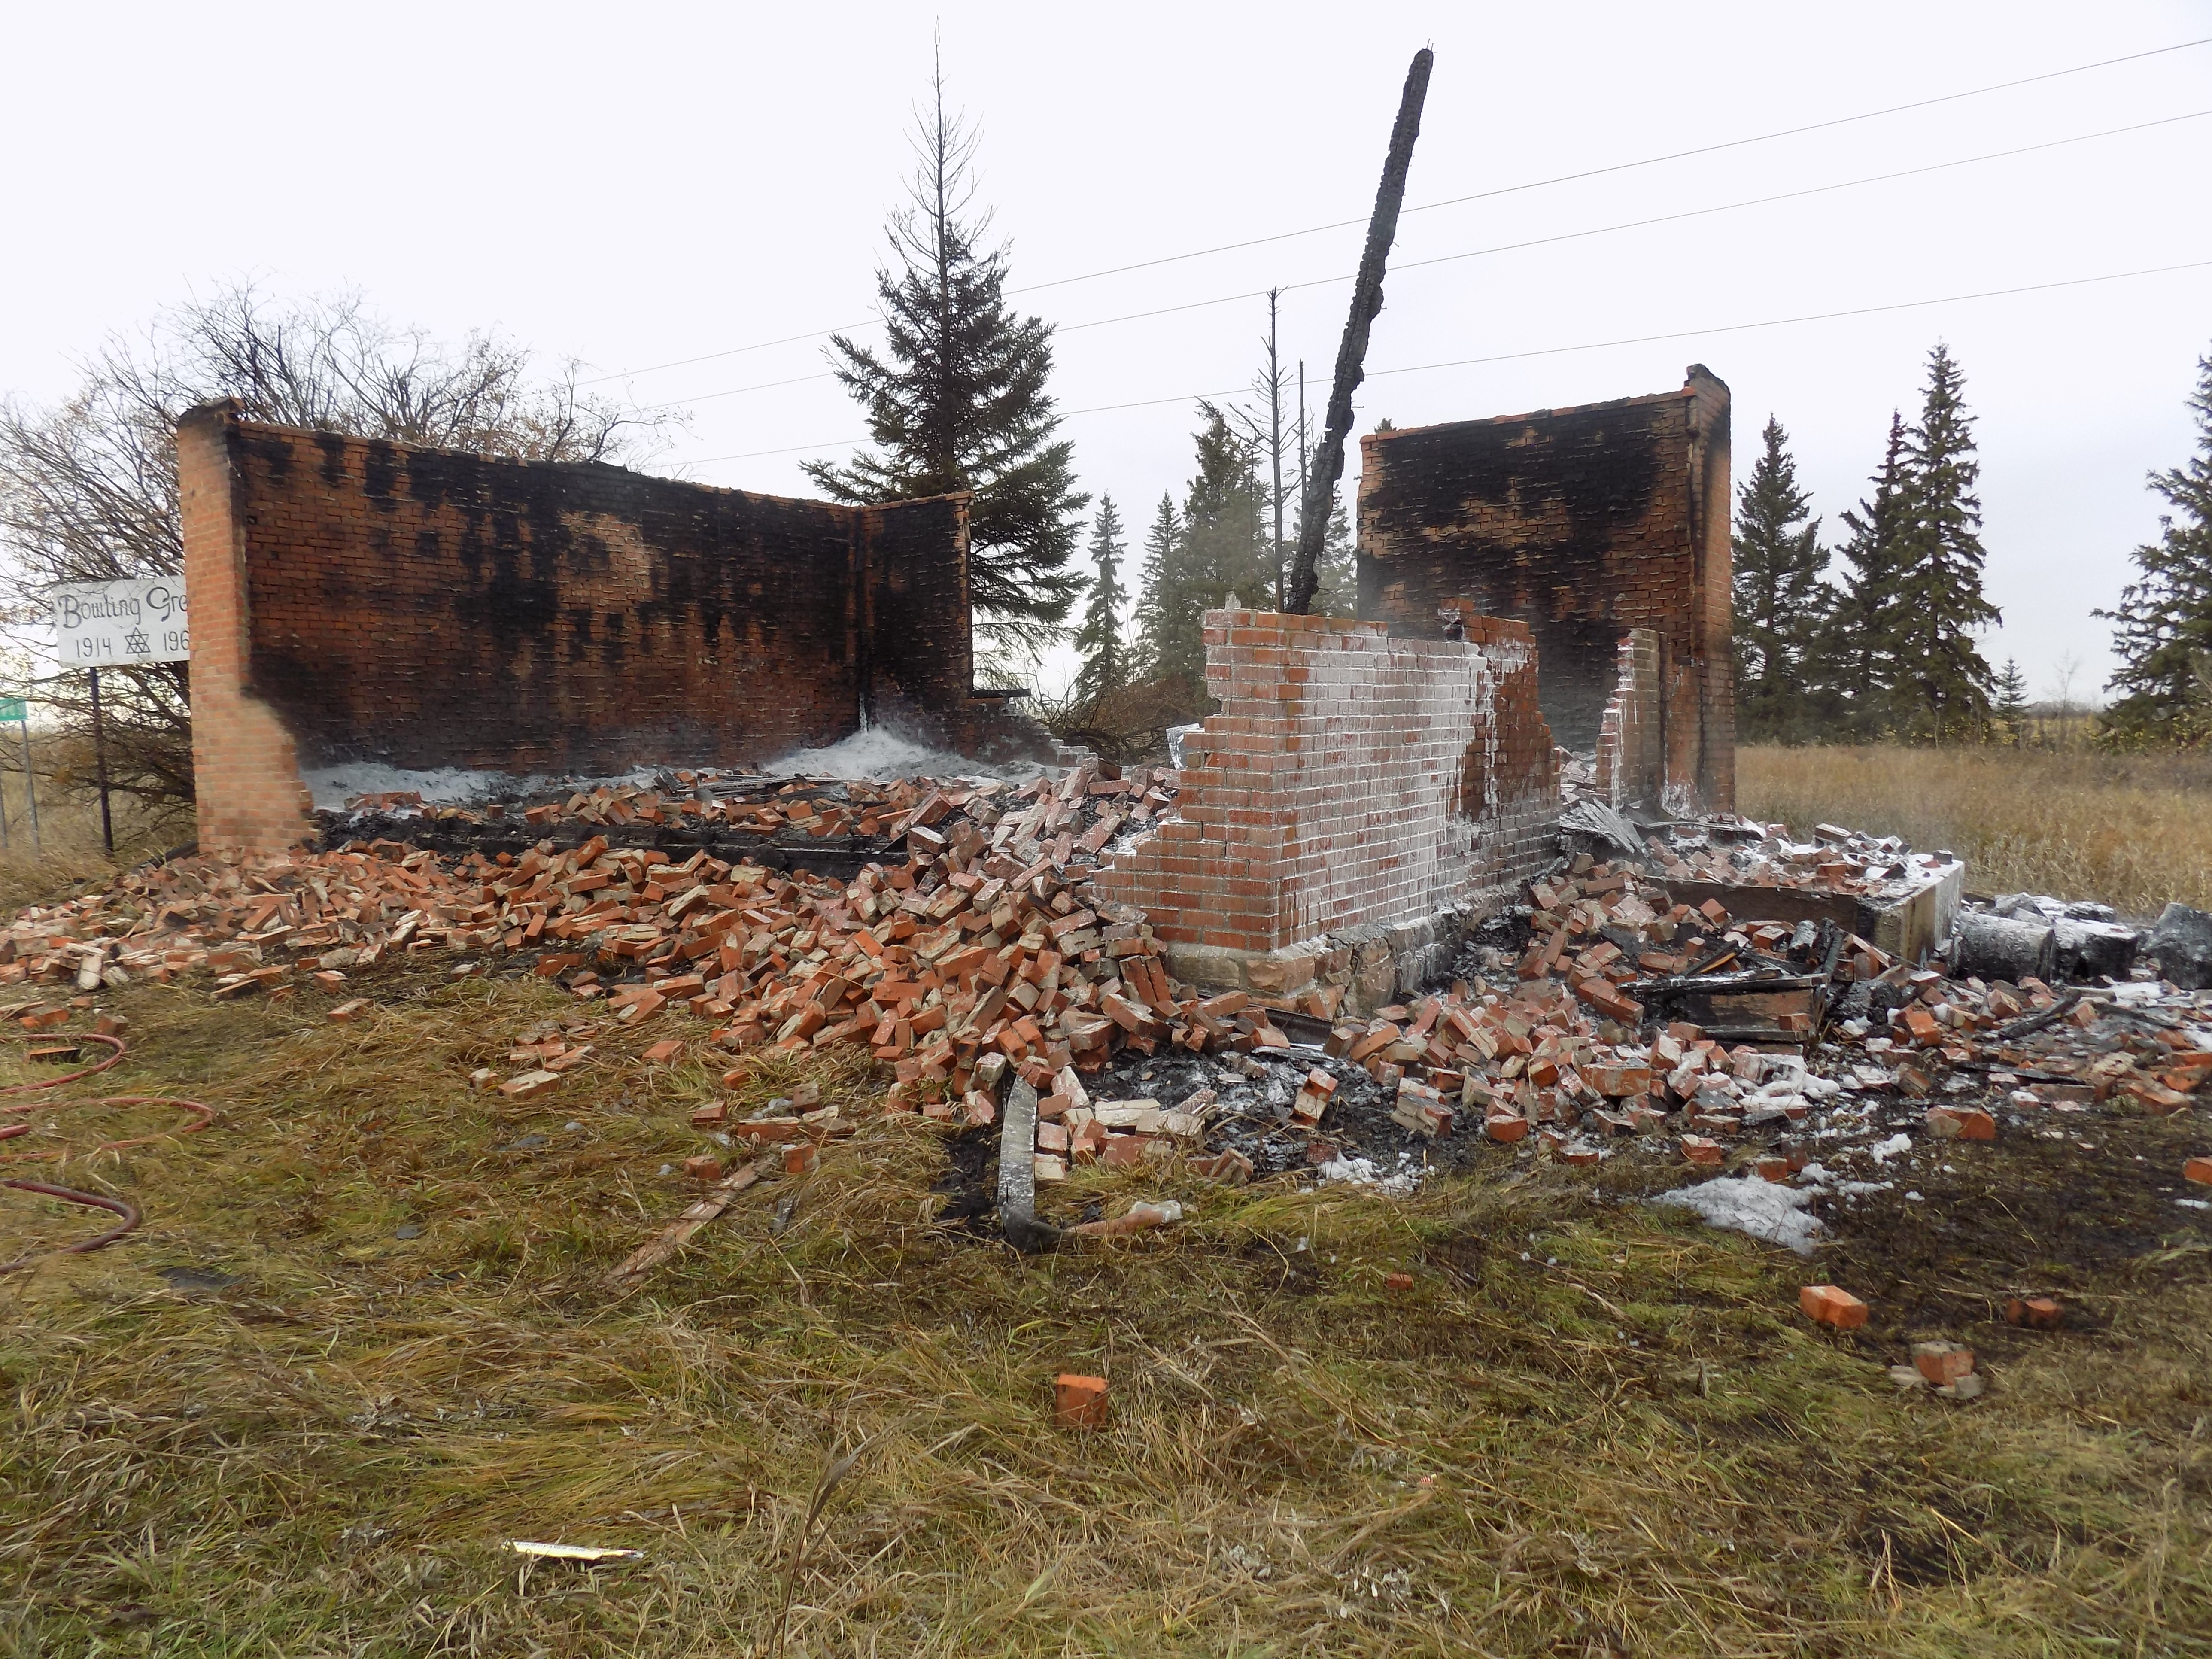 Alberta RCMP charge teen in 2019 arson that destroyed historic school